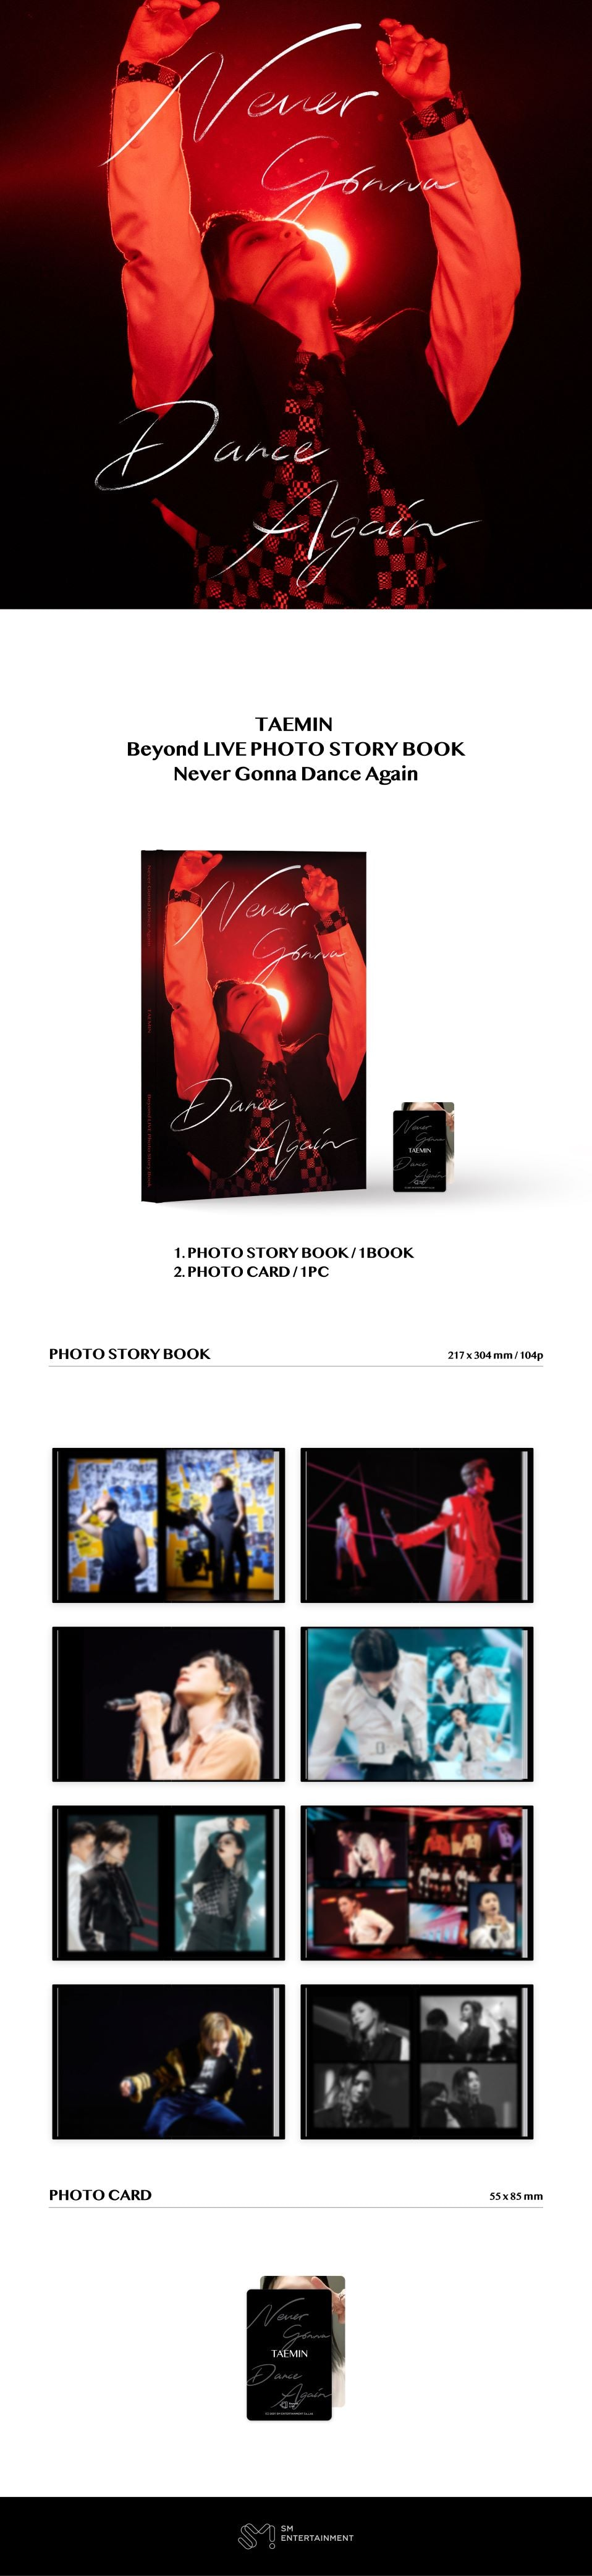 PREORDER   TAEMIN BEYOND LIVE PHOTO STORY BOOK - N.G.D.A Infographic